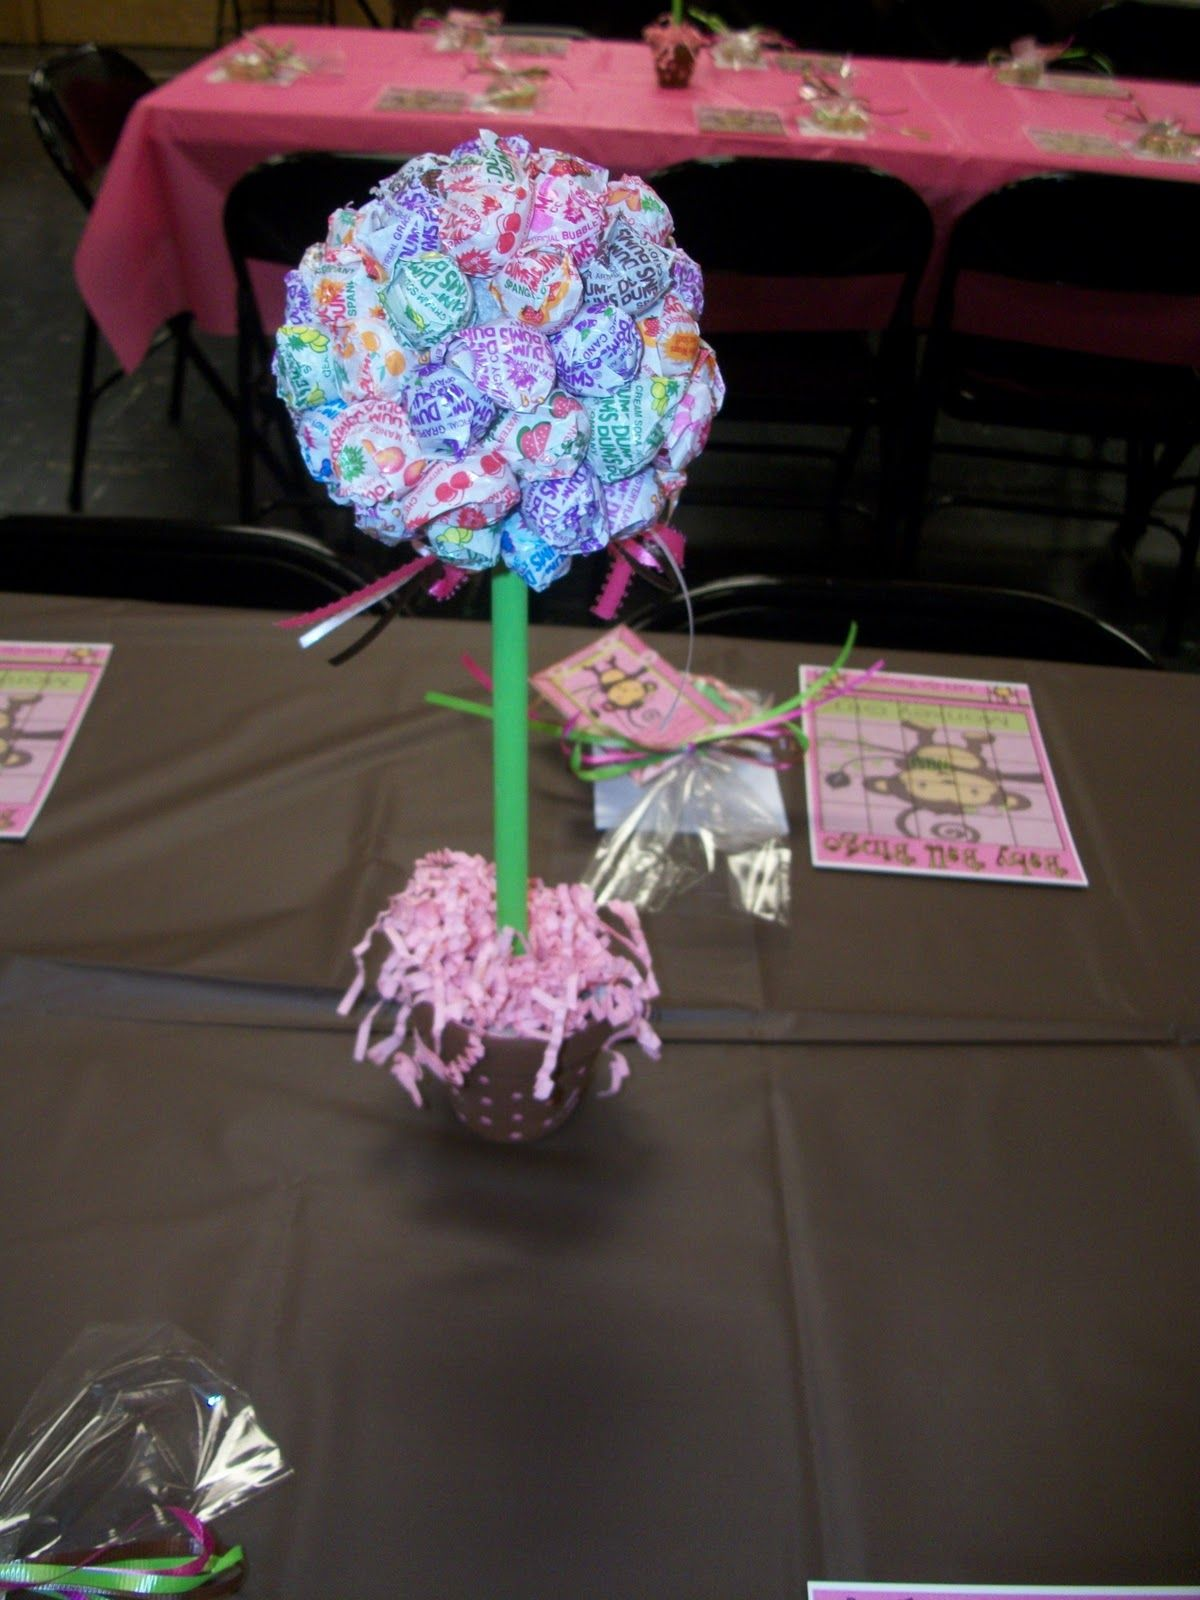 14 year old girl birthday party on pinterest The Lollypop